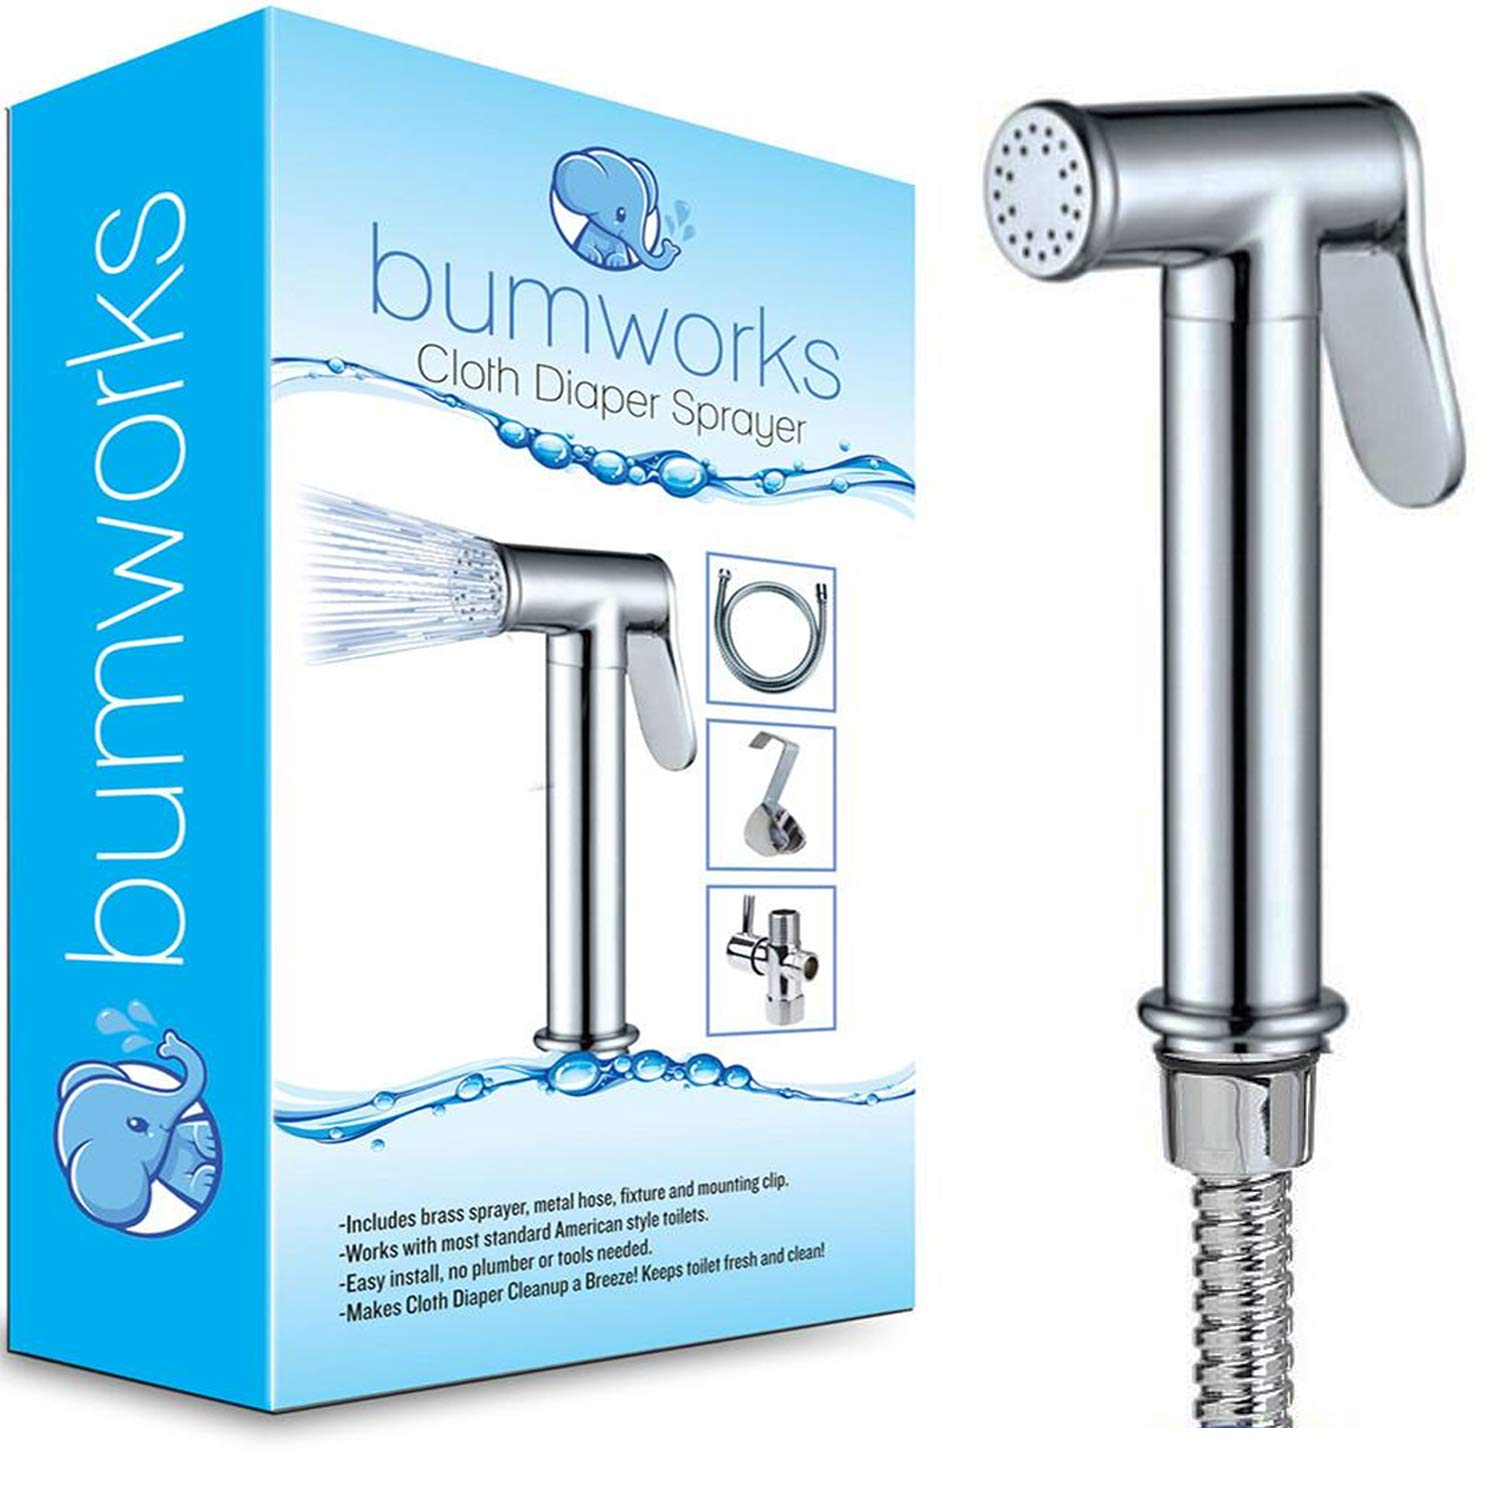 Bumworks Cloth Diaper Toilet Sprayer Kit - Brass Chrome Hand Held Bidet w/Metal Hose, T-Valve (7/8 inch), and Mounting Clip Attachment Adapter (3-Way Valve) by Kaydee Baby